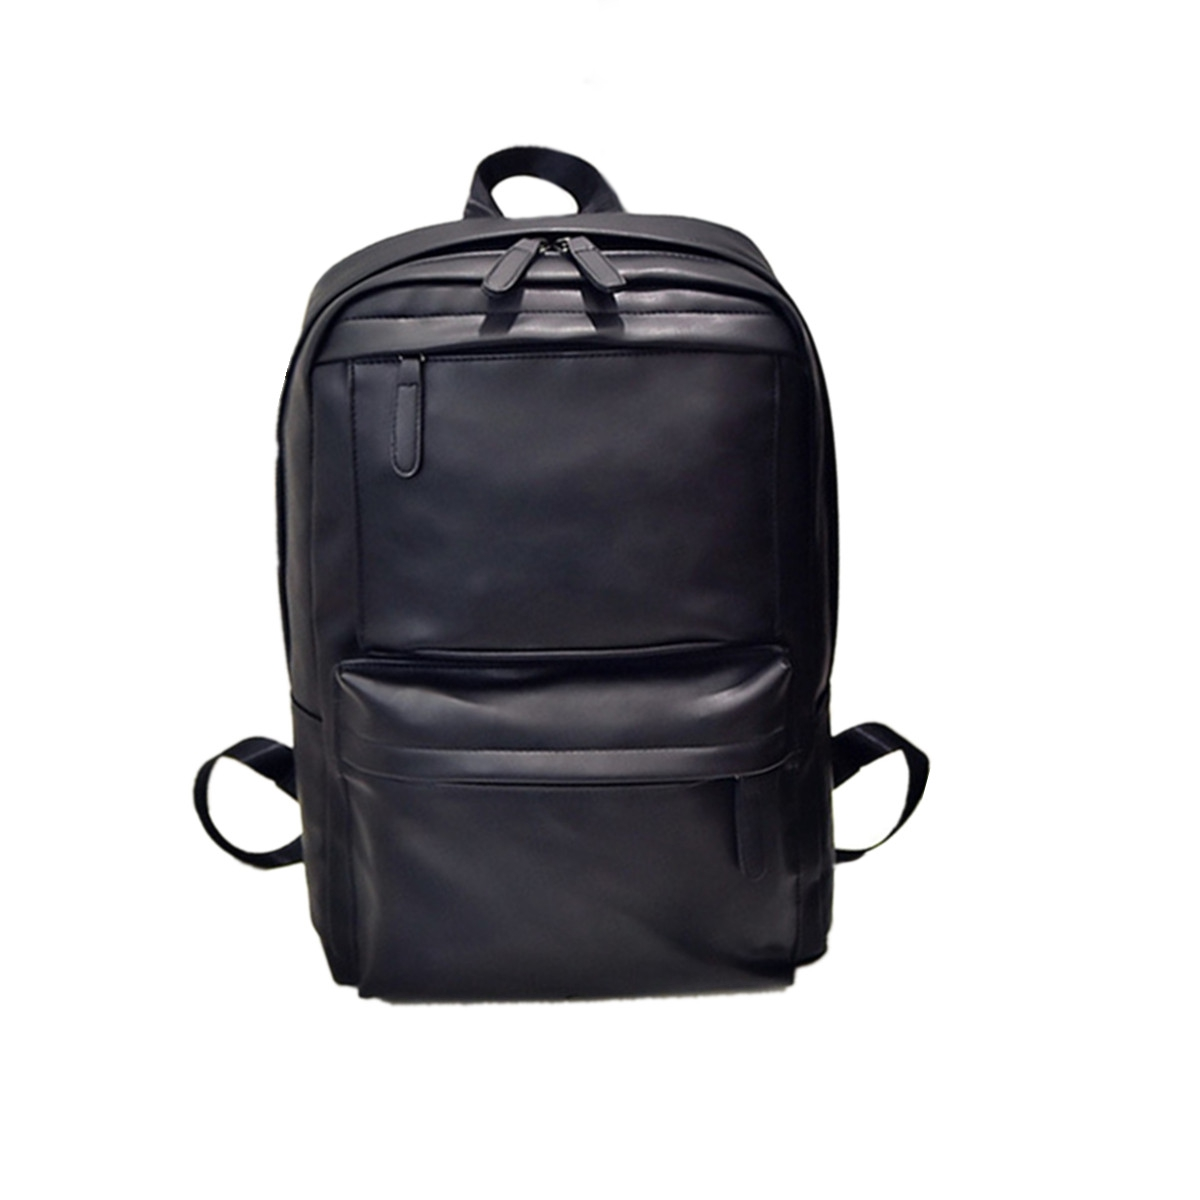 Men's Women's Vintage Laptop Backpack Bag Travel Bag St